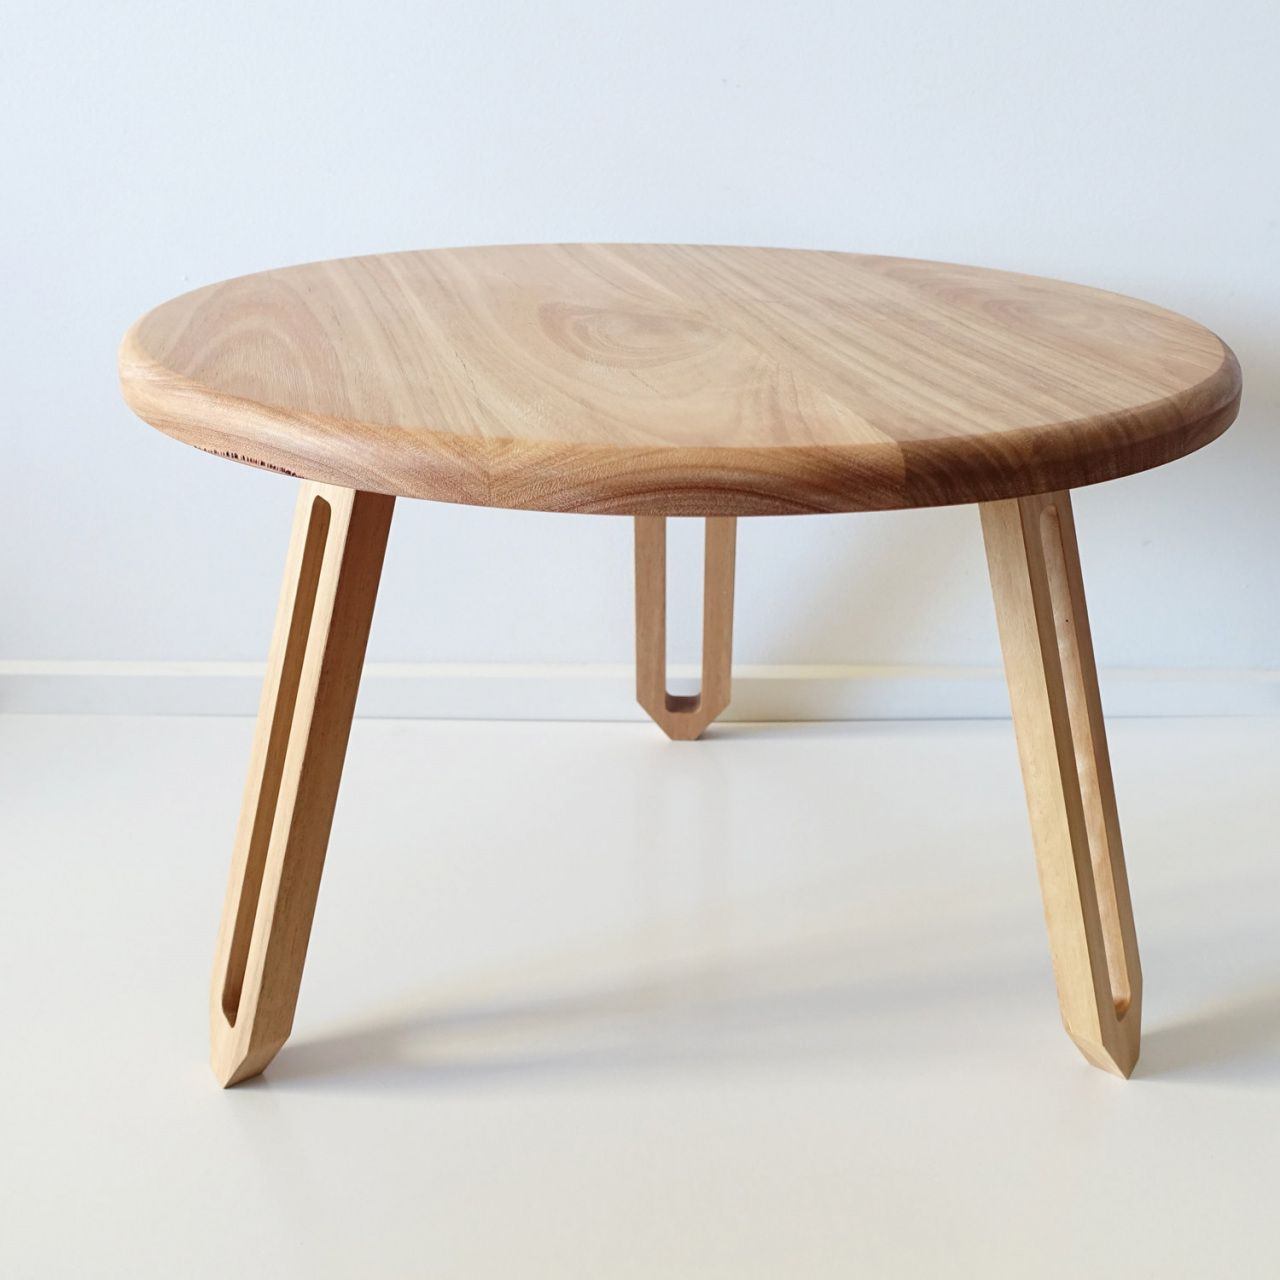 50 Low Small Table Vintage Modern Furniture Check More At Http Www Nikkitsfun Com Low Small Table Coffee Table Low Coffee Table Round Coffee Table